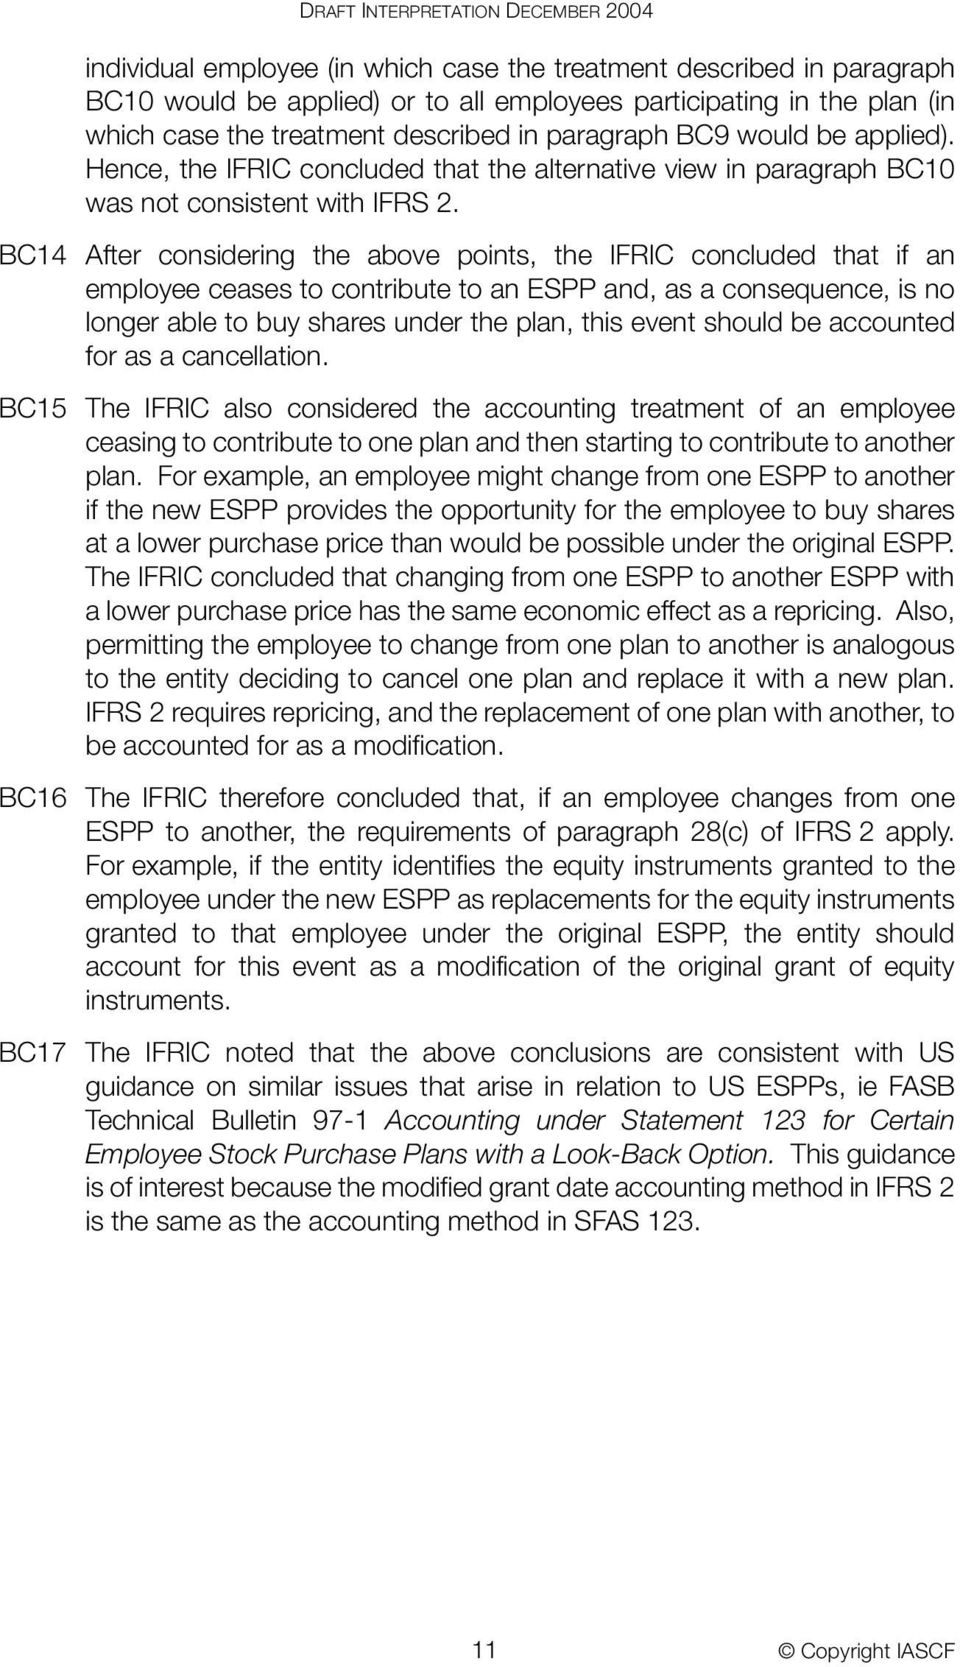 BC14 After considering the above points, the IFRIC concluded that if an employee ceases to contribute to an ESPP and, as a consequence, is no longer able to buy shares under the plan, this event